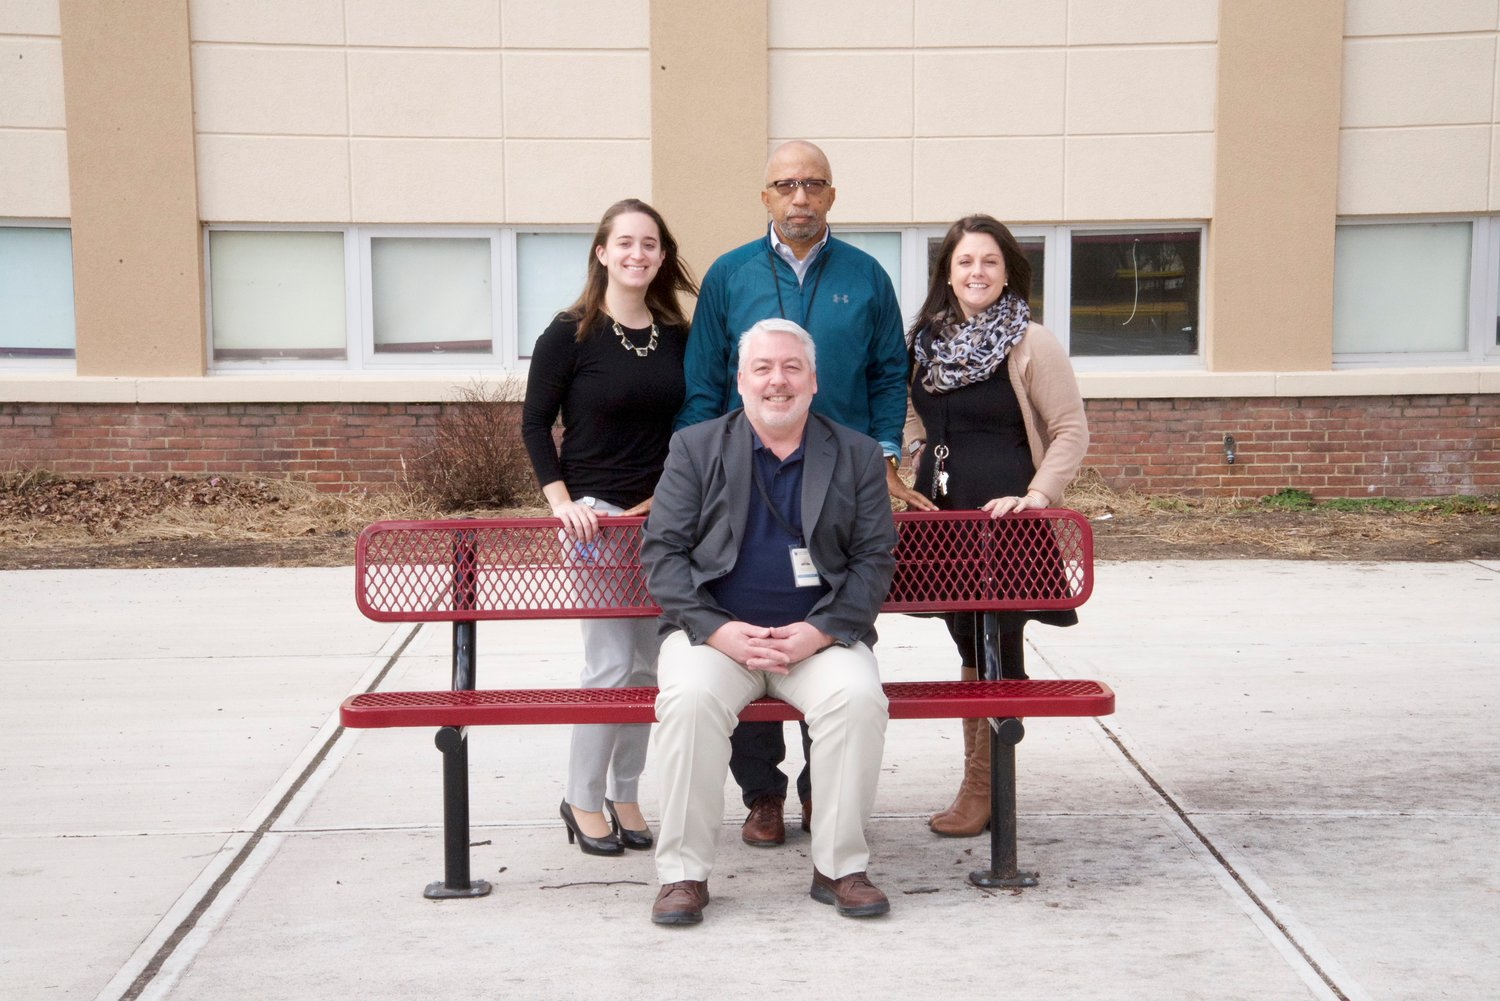 George Fox Middle School Principal Russ Austin sat with the three assistant principals: Rebecca Donovan, John Nunn and Lindsay Drager.